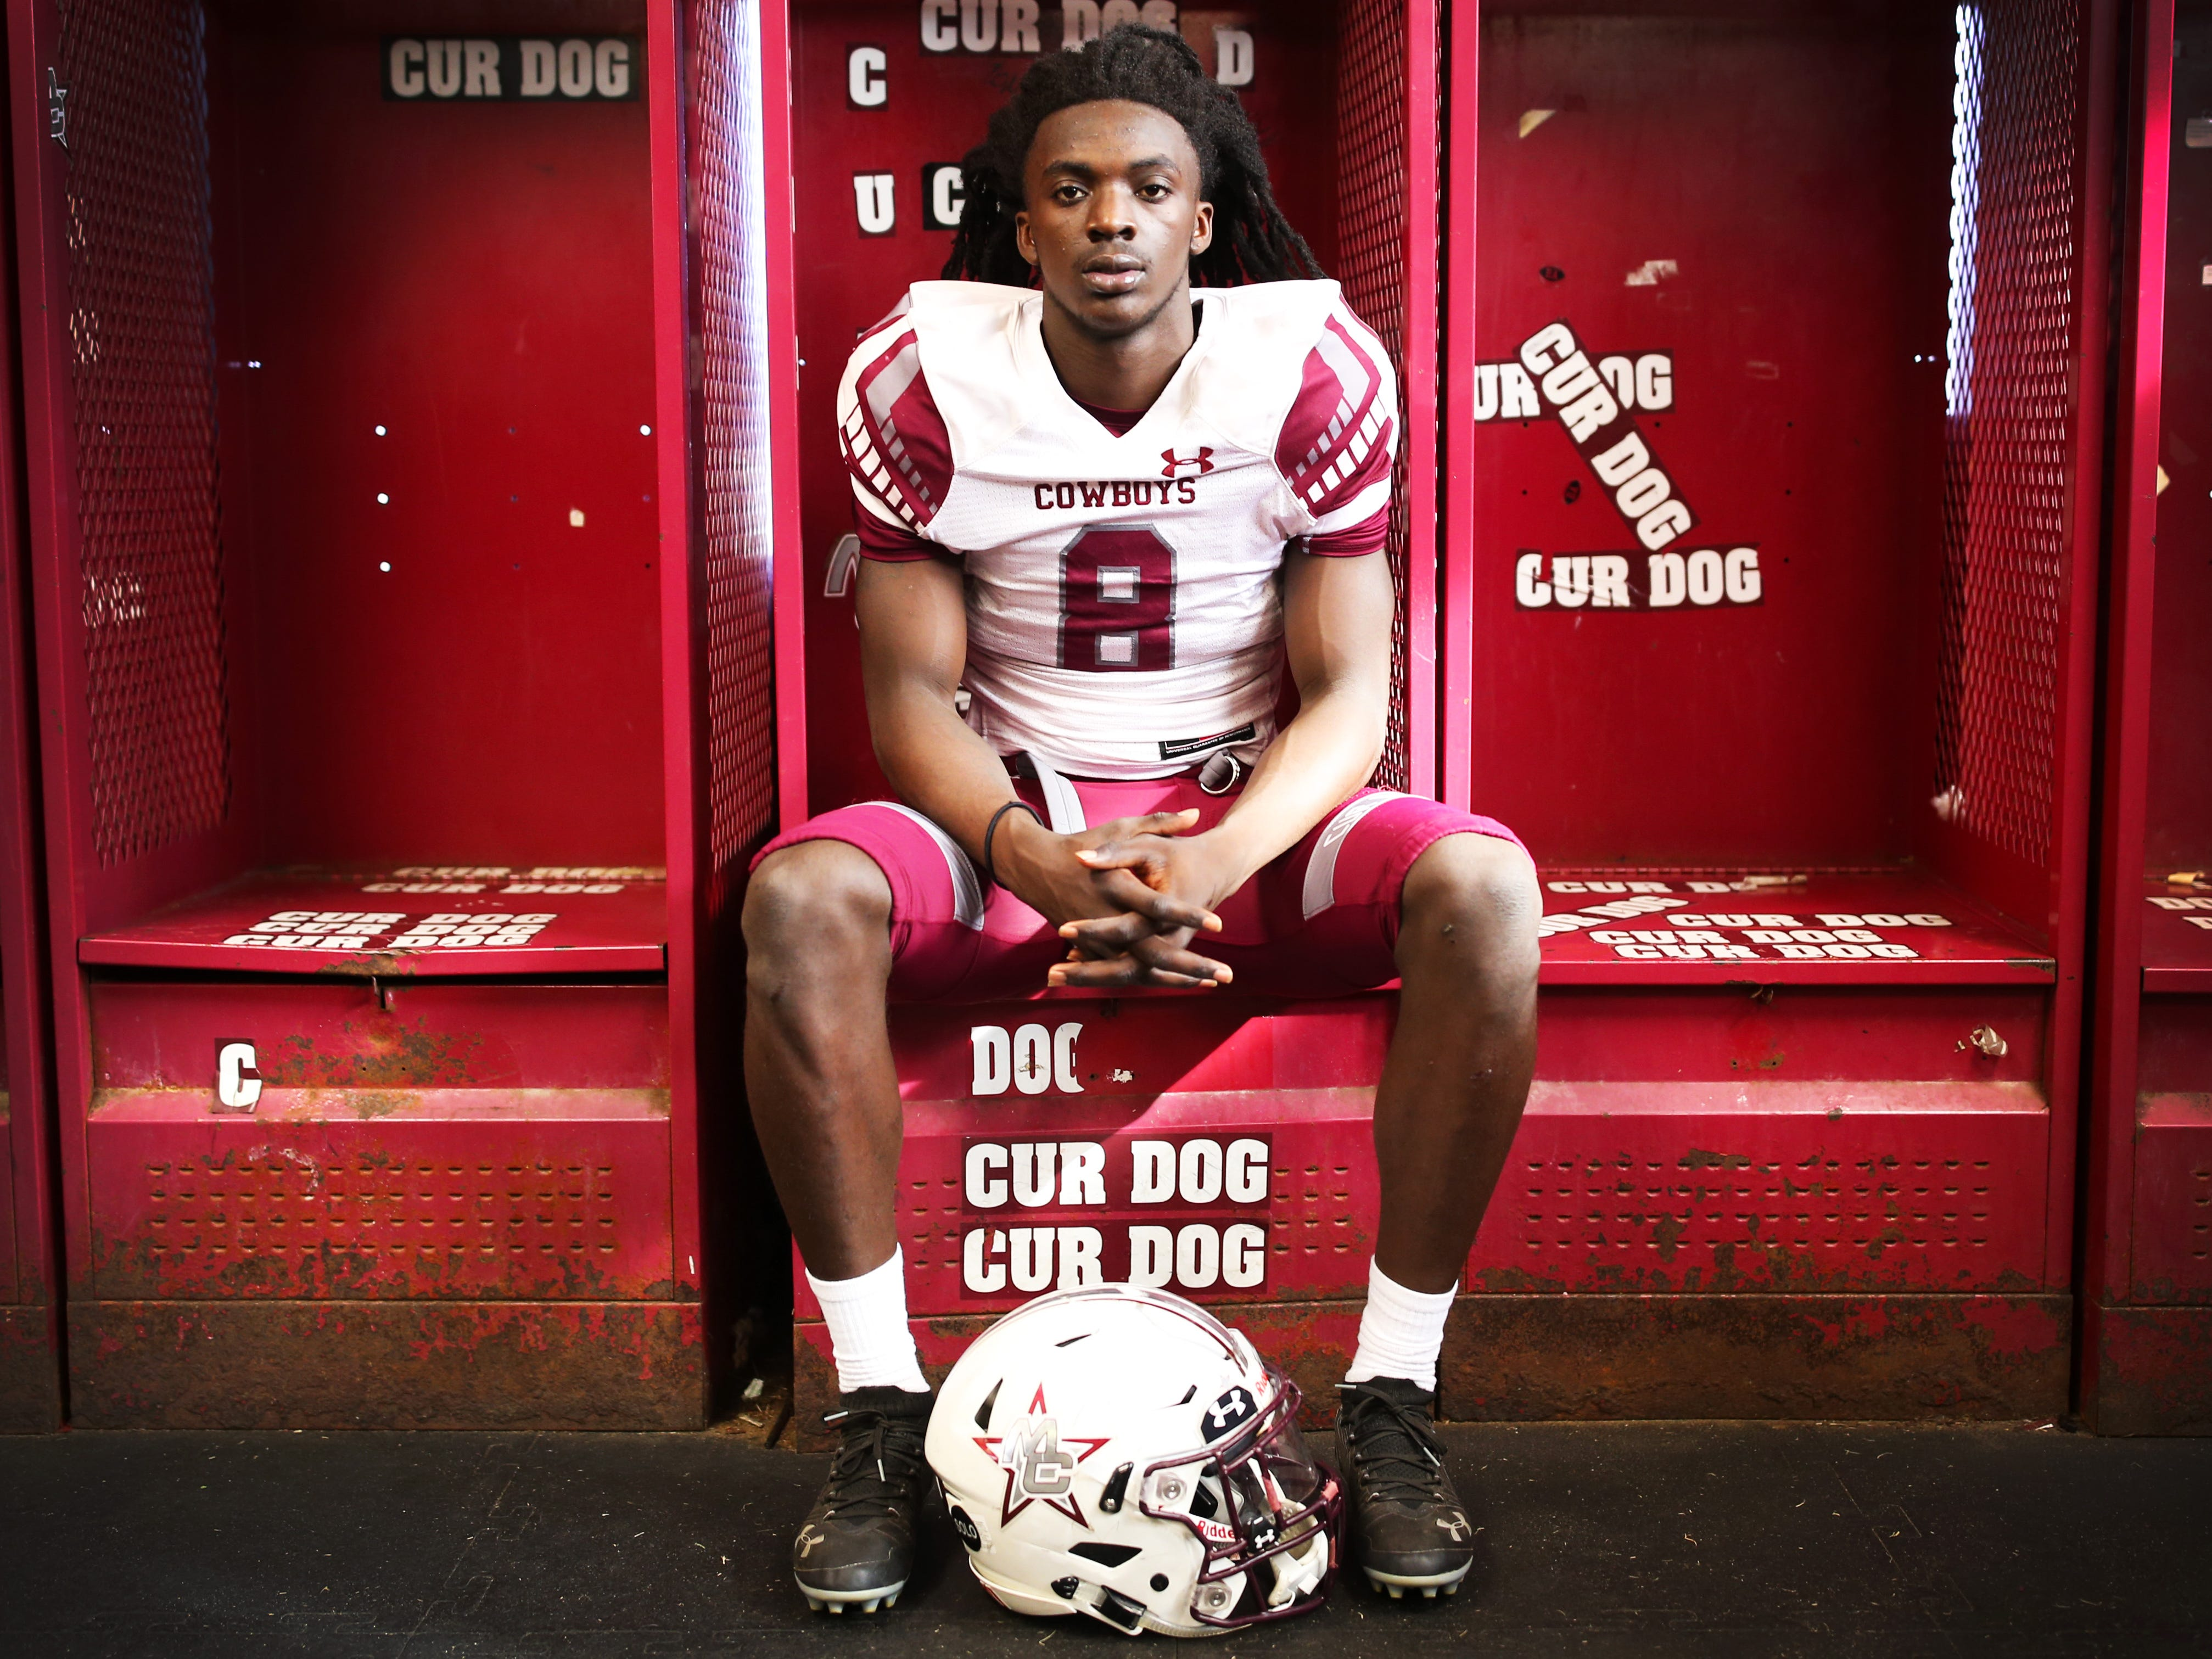 Madison County senior Travis Jay was named the 2018 All-Big Bend Offensive Player of the Year in football while playing quarterback and defensive back for a Cowboys team that went 14-1 and won a second straight Class 1A state title. Offensively, Jay, an FSU commit, threw for 1,344 yards and 13 touchdowns, and ran for 1,096 yards and 20 touchdowns. Defensively he produced 48 tackles, 5 interceptions, 15 pass breakups, and two touchdowns.